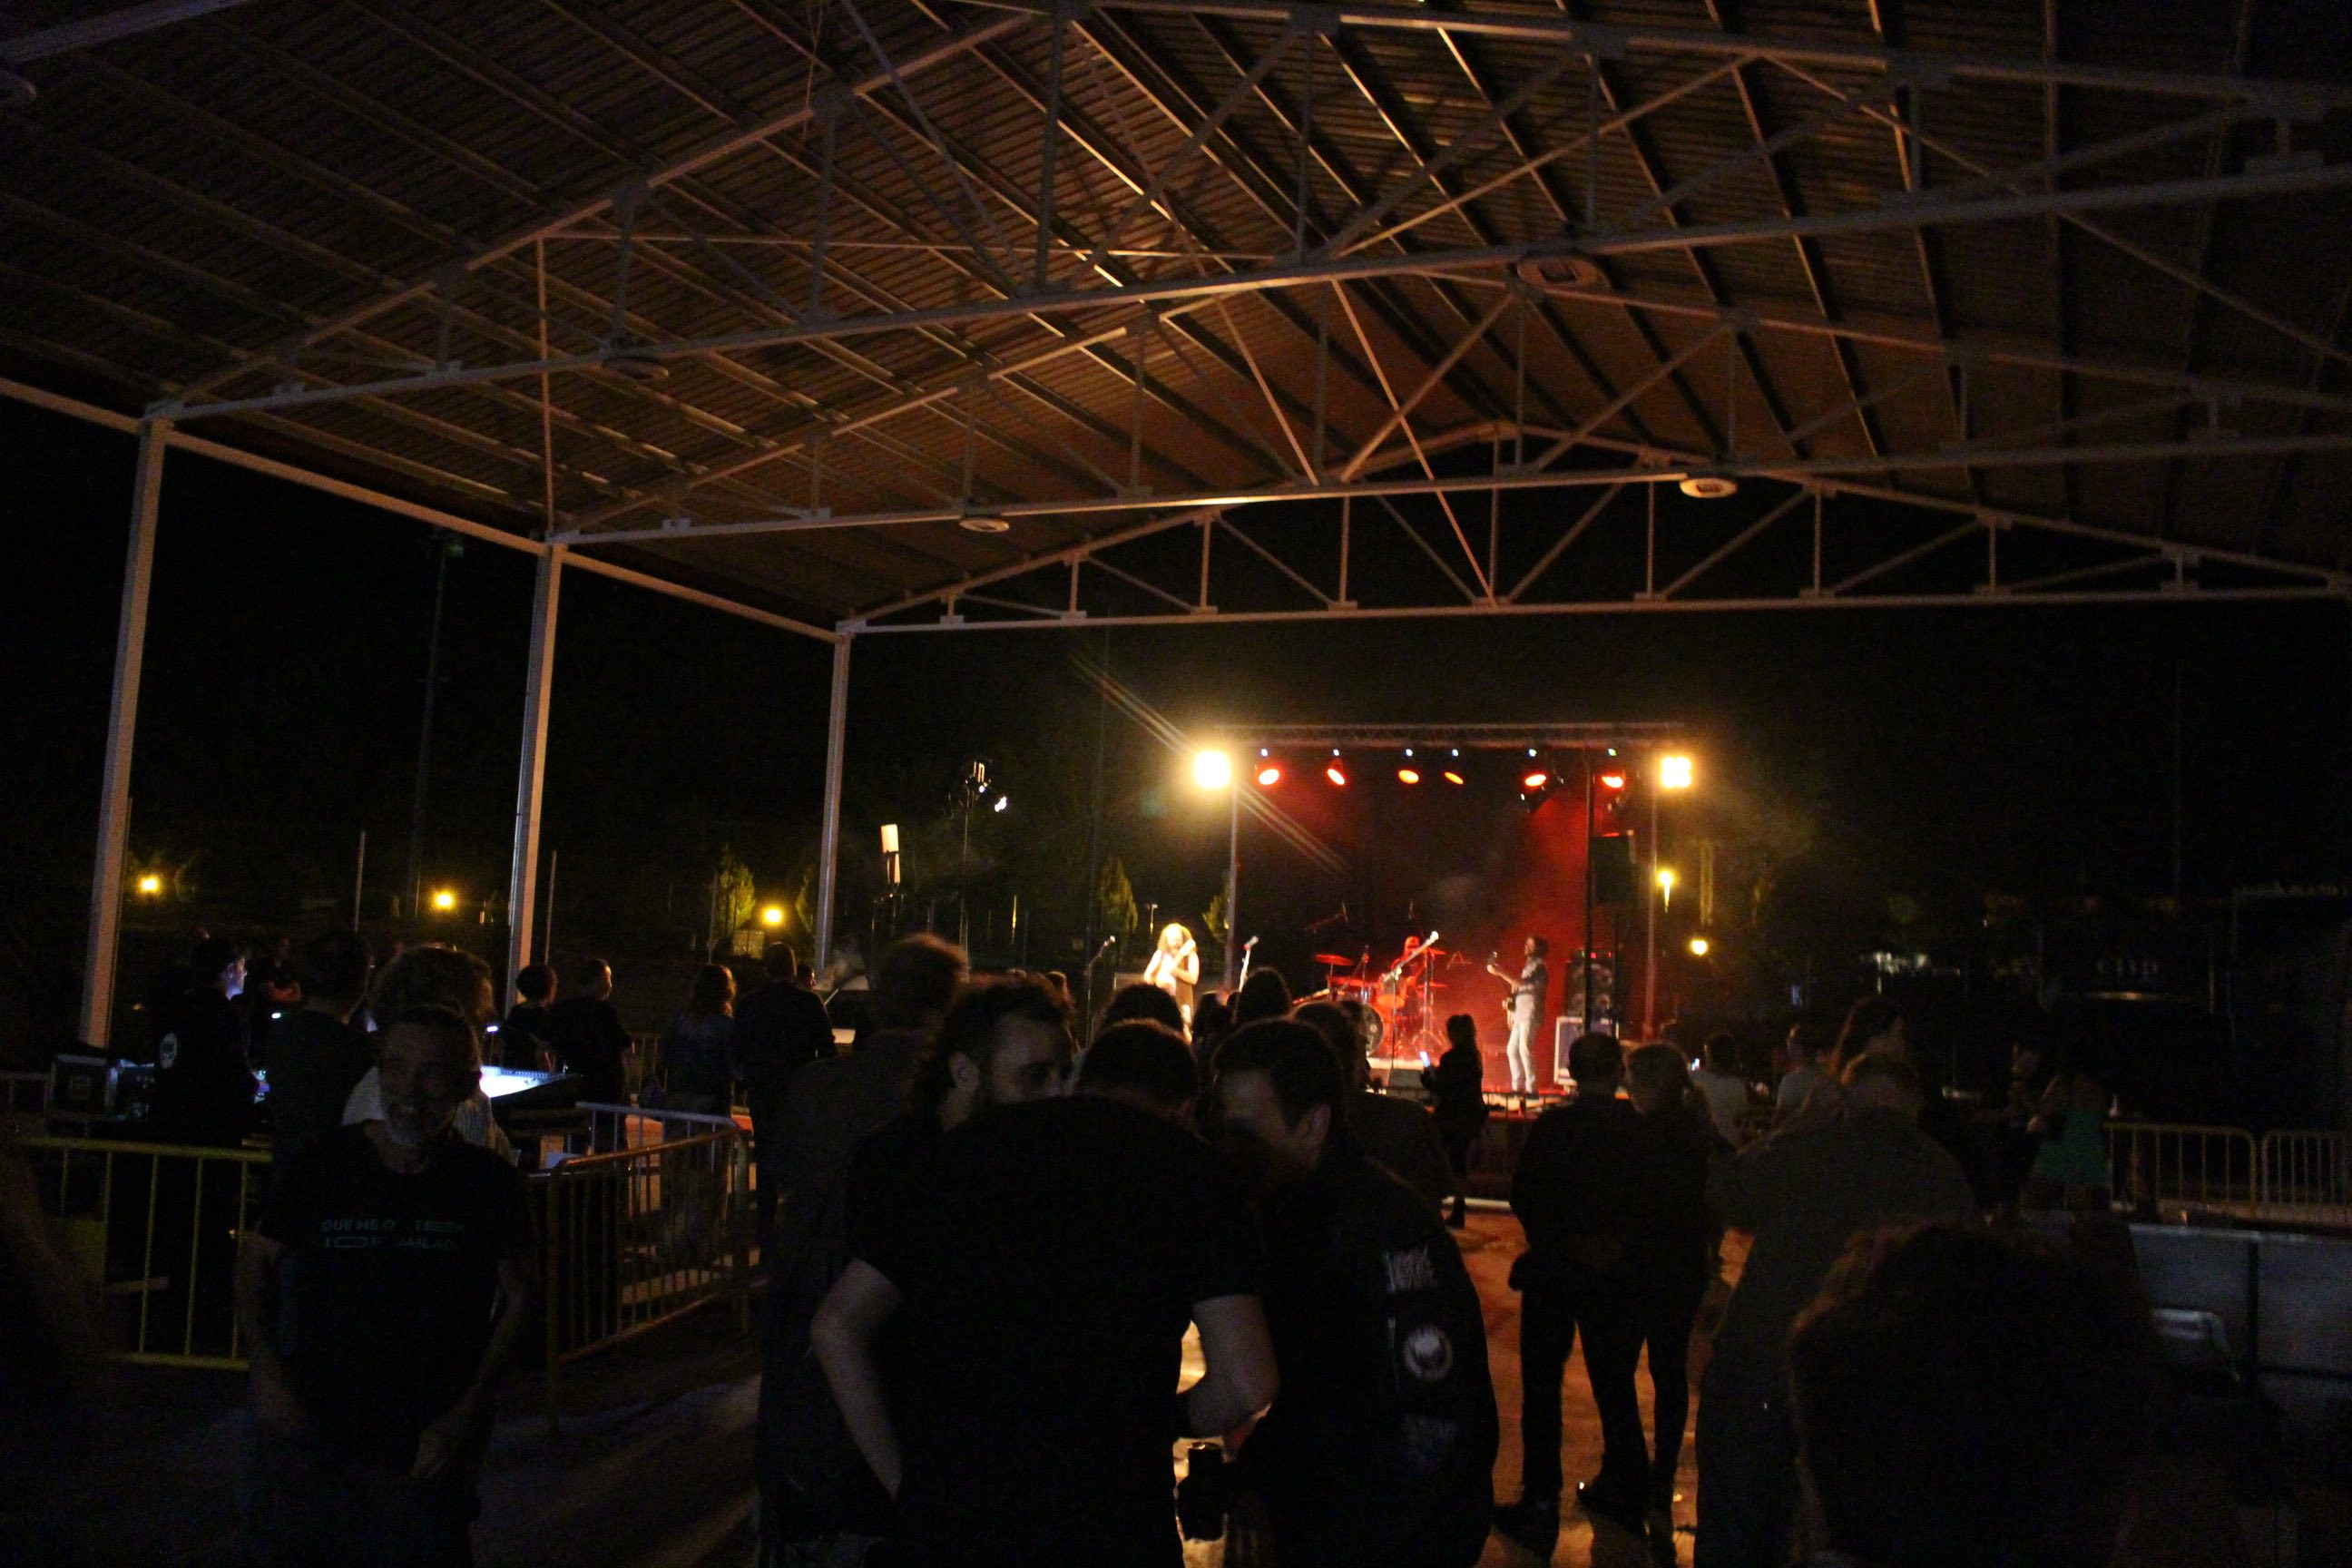 3.CONCERT SILVERFLAME